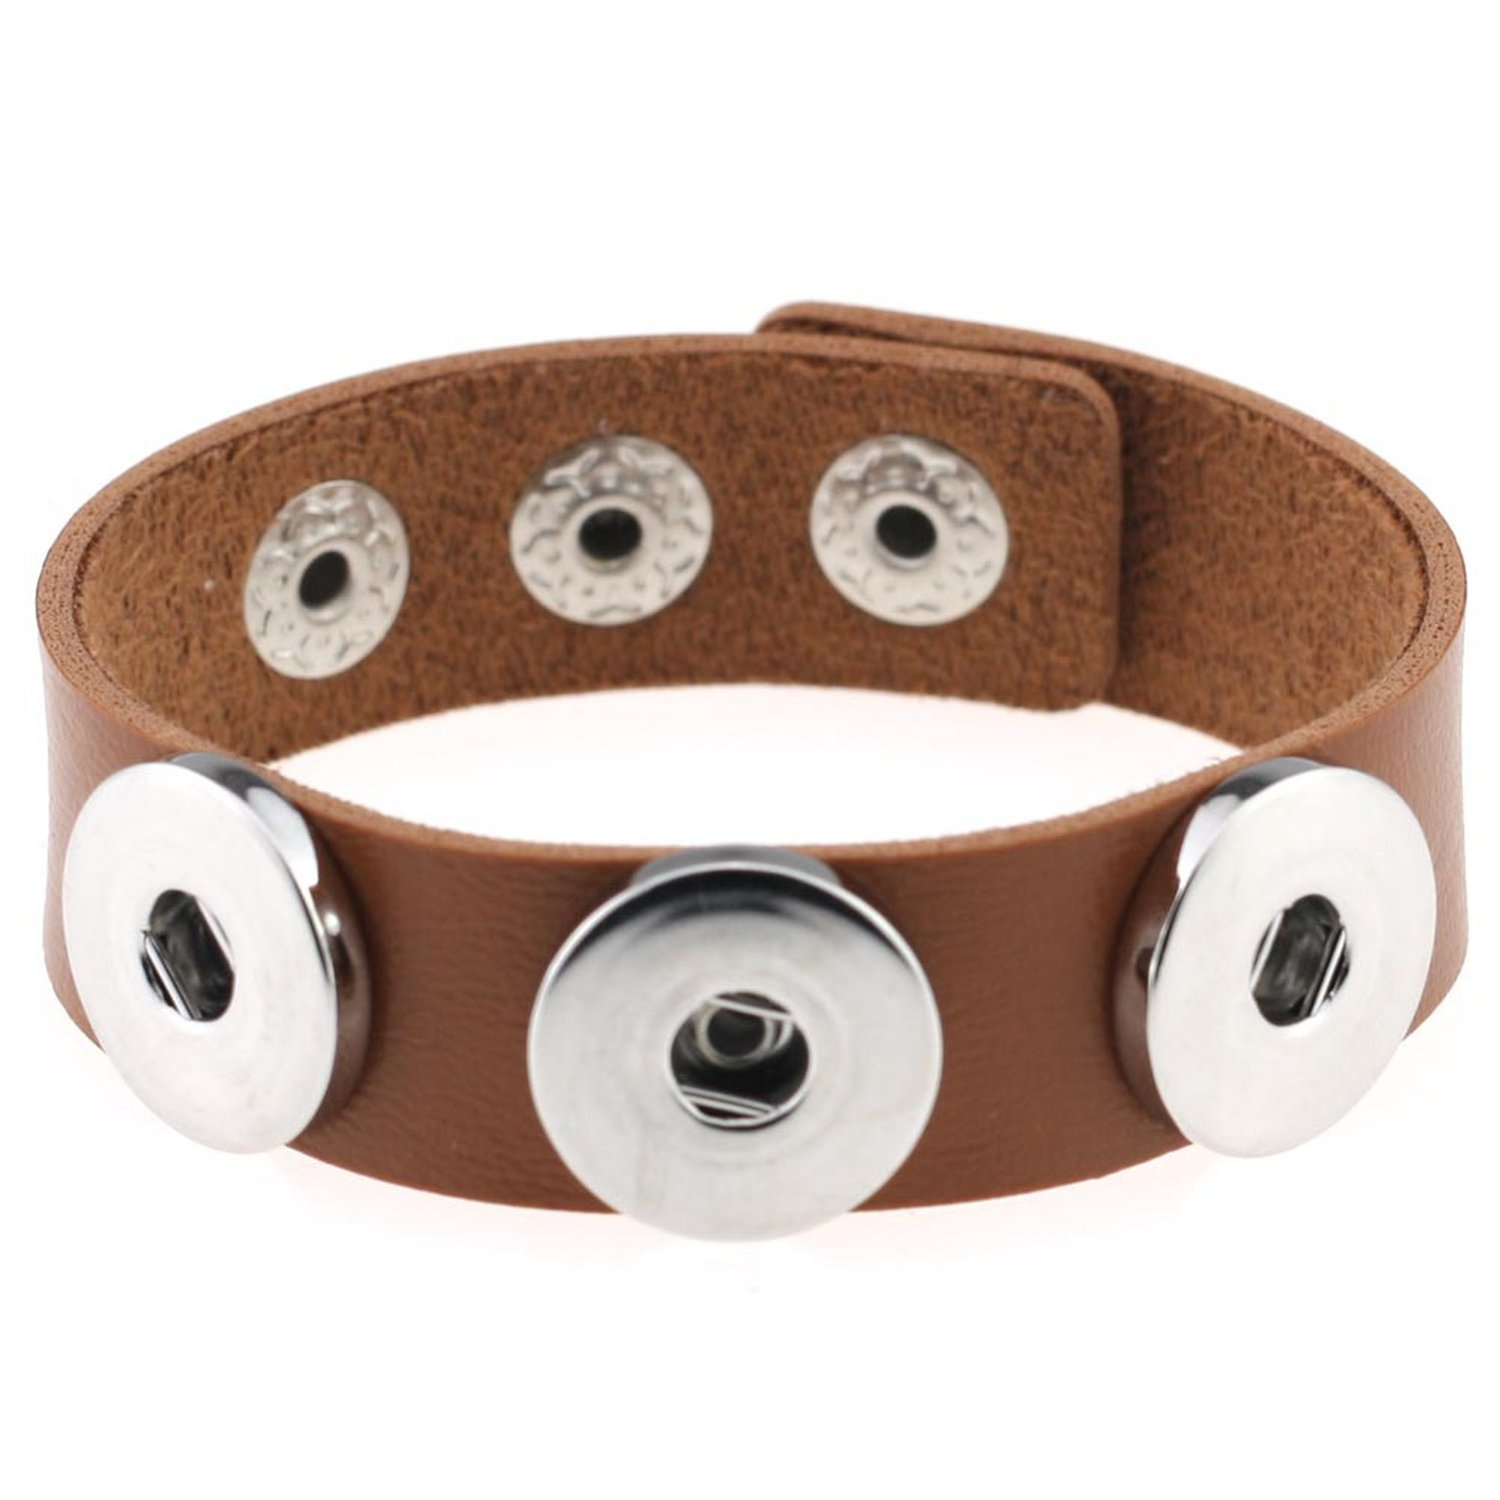 fashion DIY button bracelet PU leather noosa snap button bracelet bracelet manufacturers wholesale,Light brown